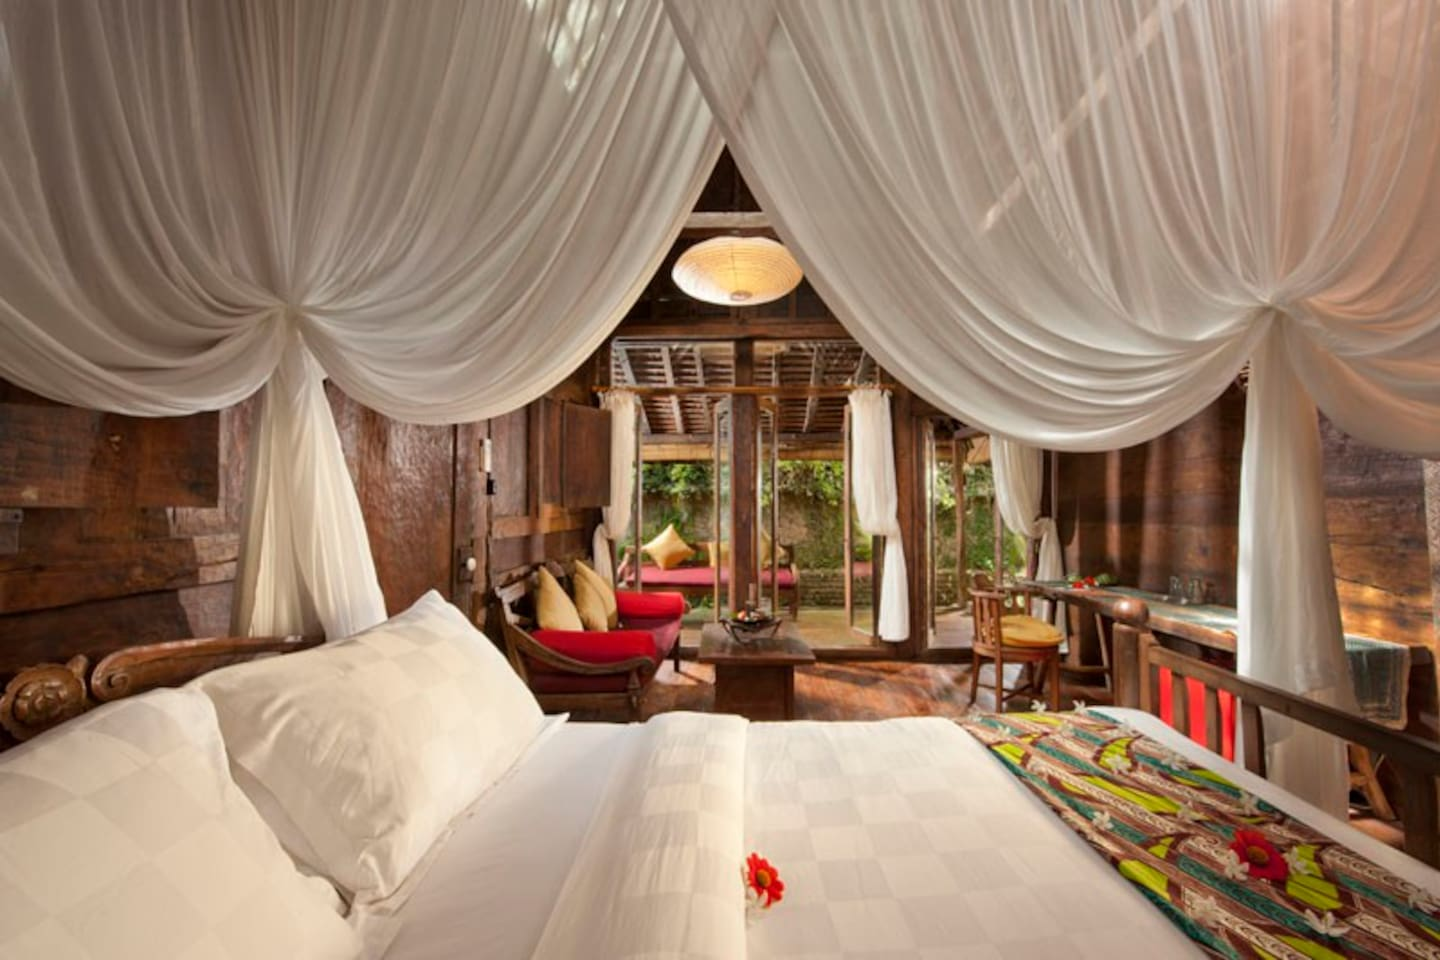 Palatial bed, fit for a Prince and his Princess